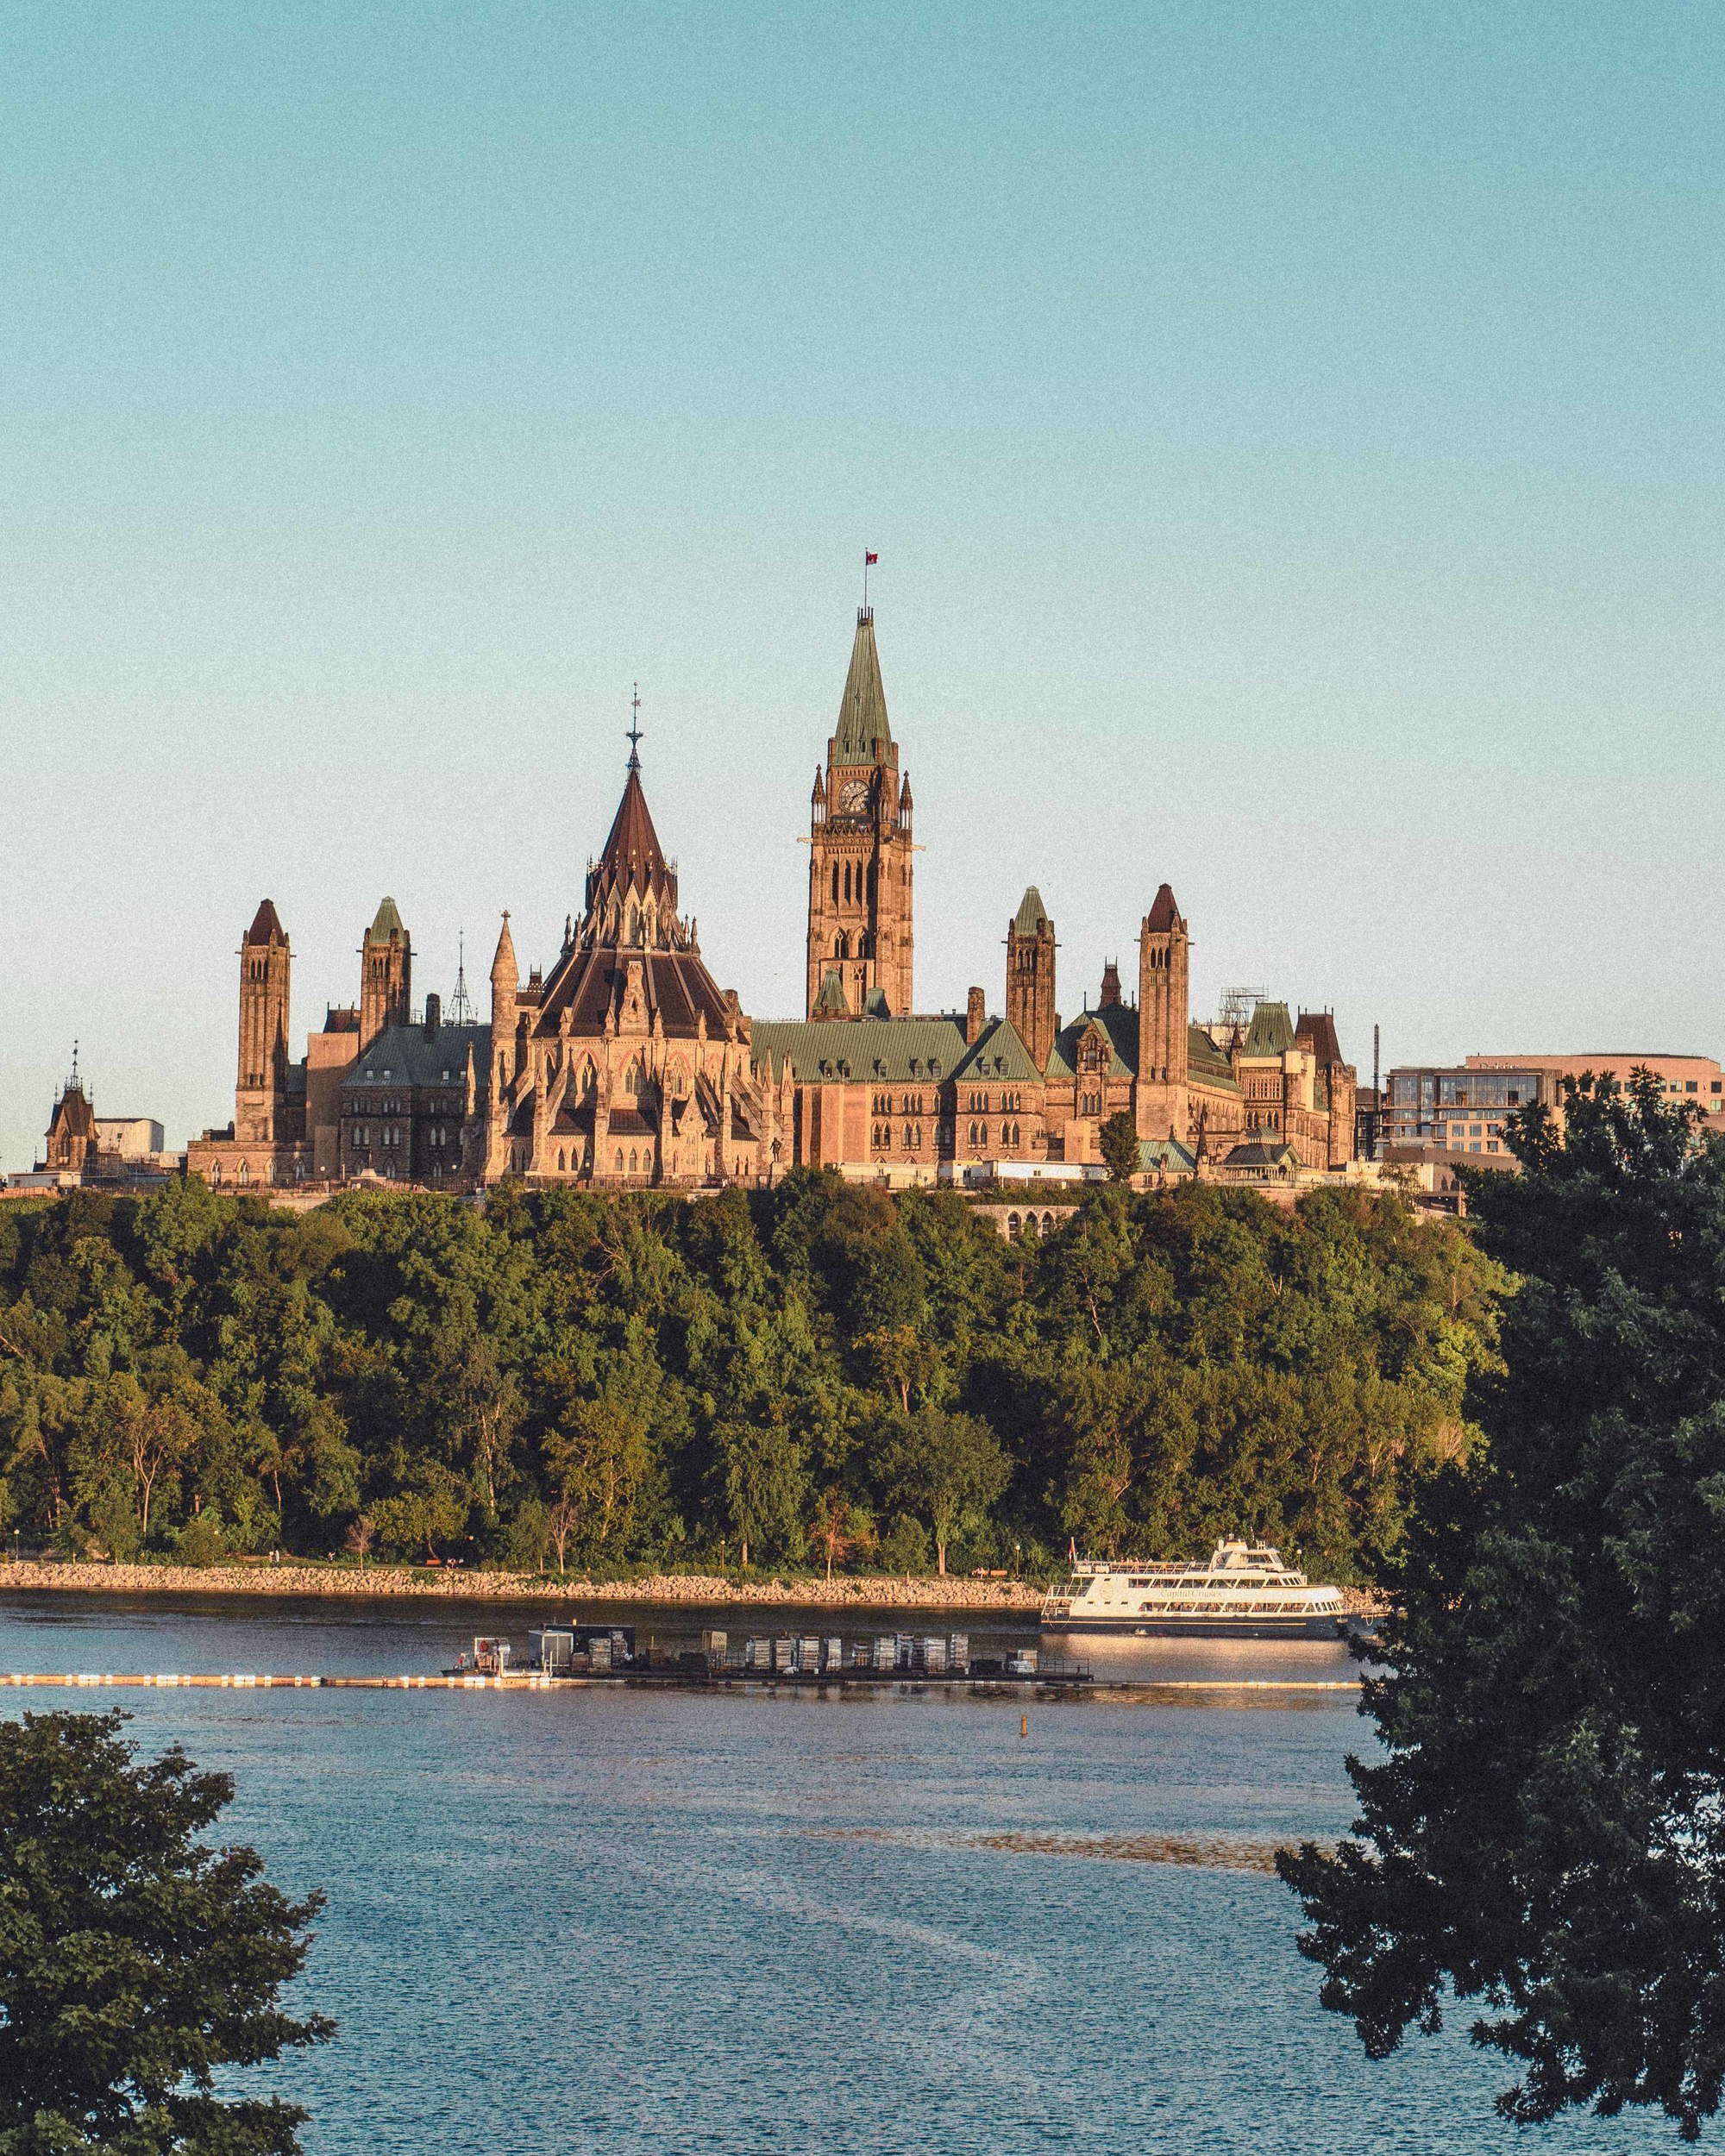 5+ Ottawa views in Ontario, Canada you'll absolutely fall in love with. Looking for the best photo locations in the Canadian capital city of Ottawa? Here's your ultimate guide to Instagrammable locations and photo spots